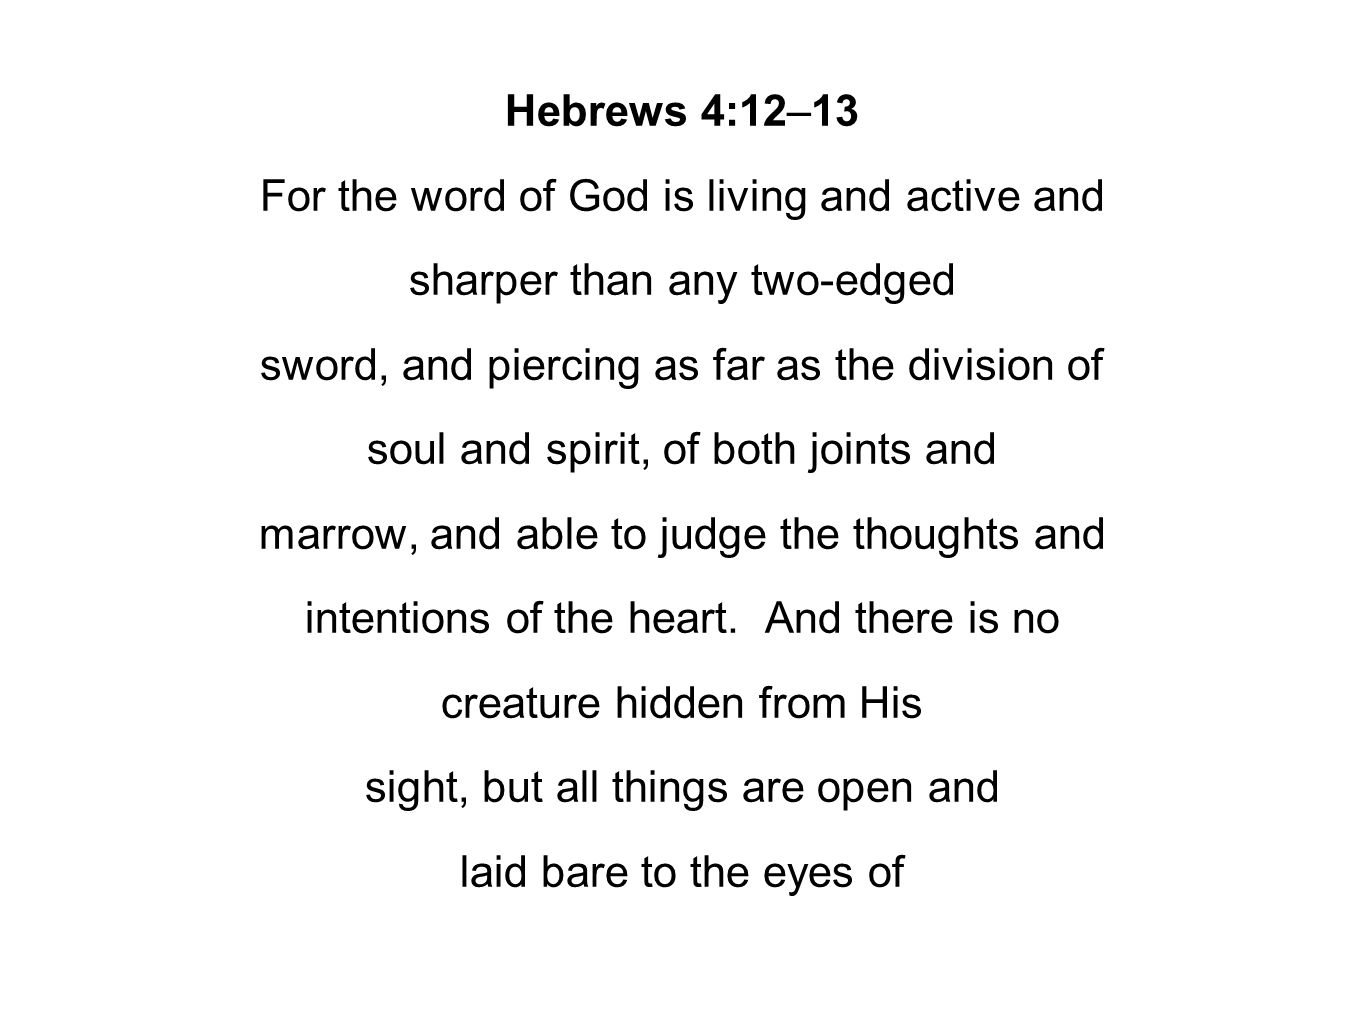 Hebrews 4:12–13 For the word of God is living and active and sharper than any two-edged sword, and piercing as far as the division of soul and spirit,